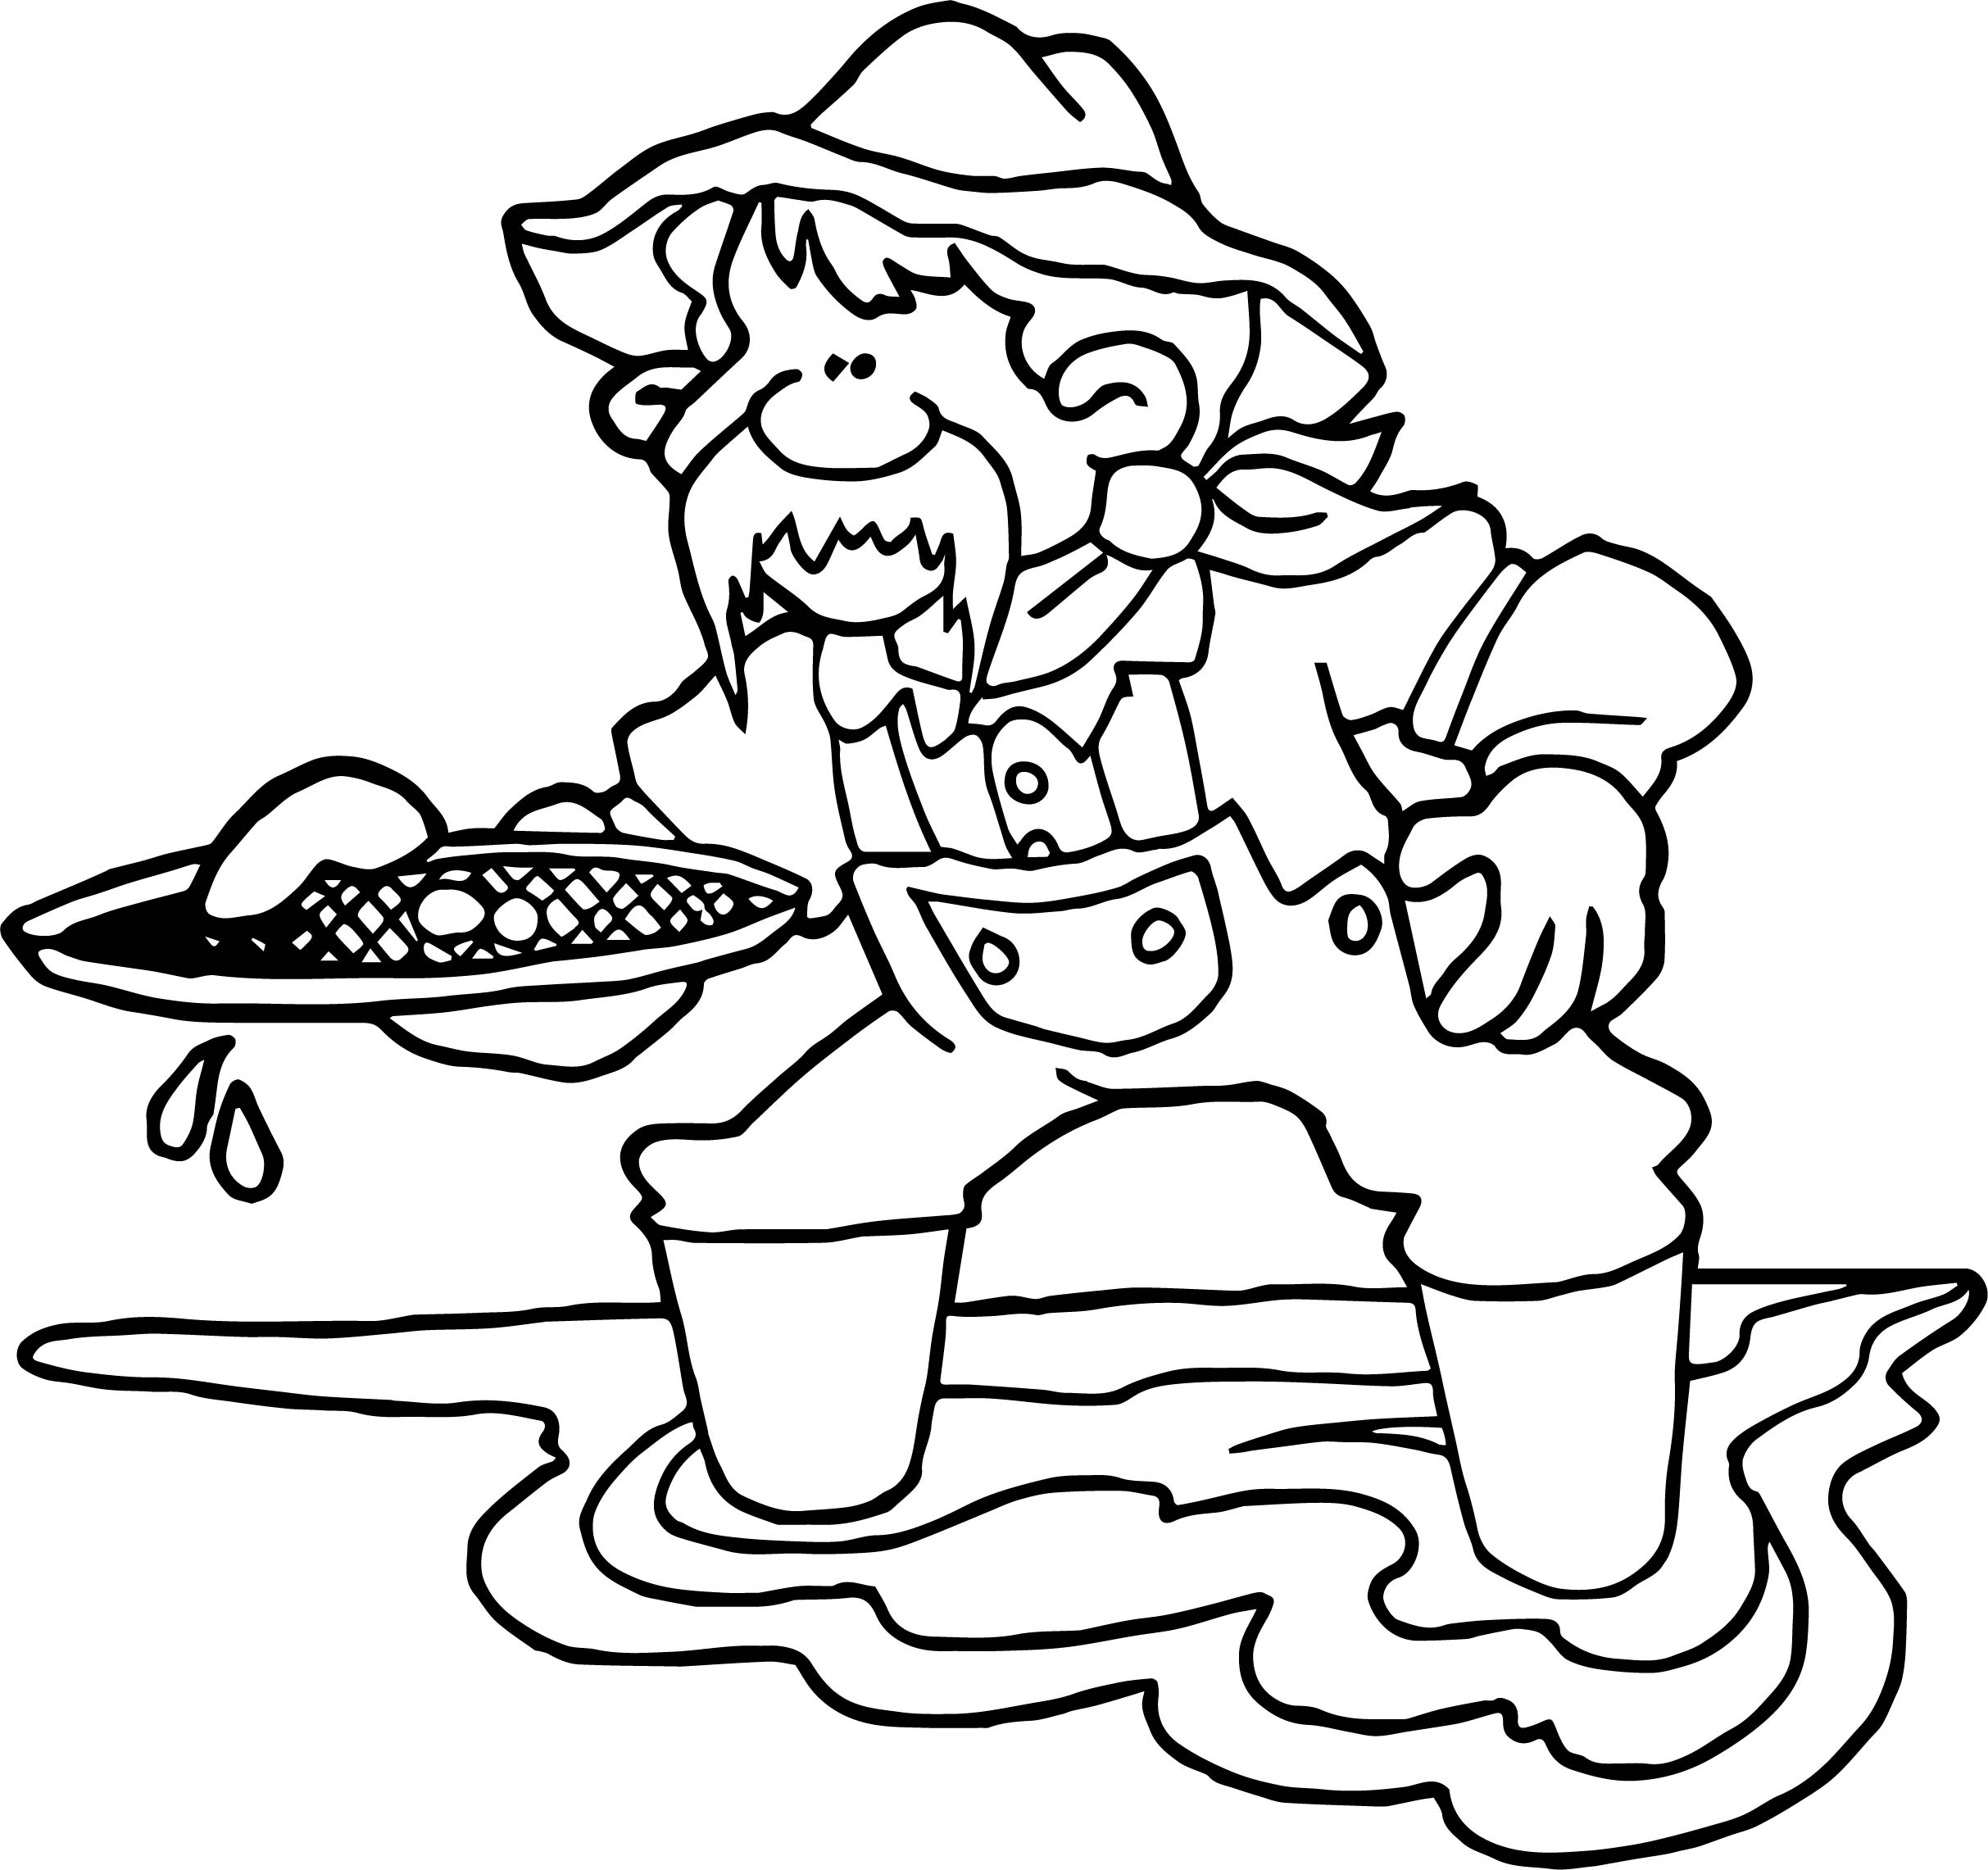 klondike gold rush coloring pages - photo#8